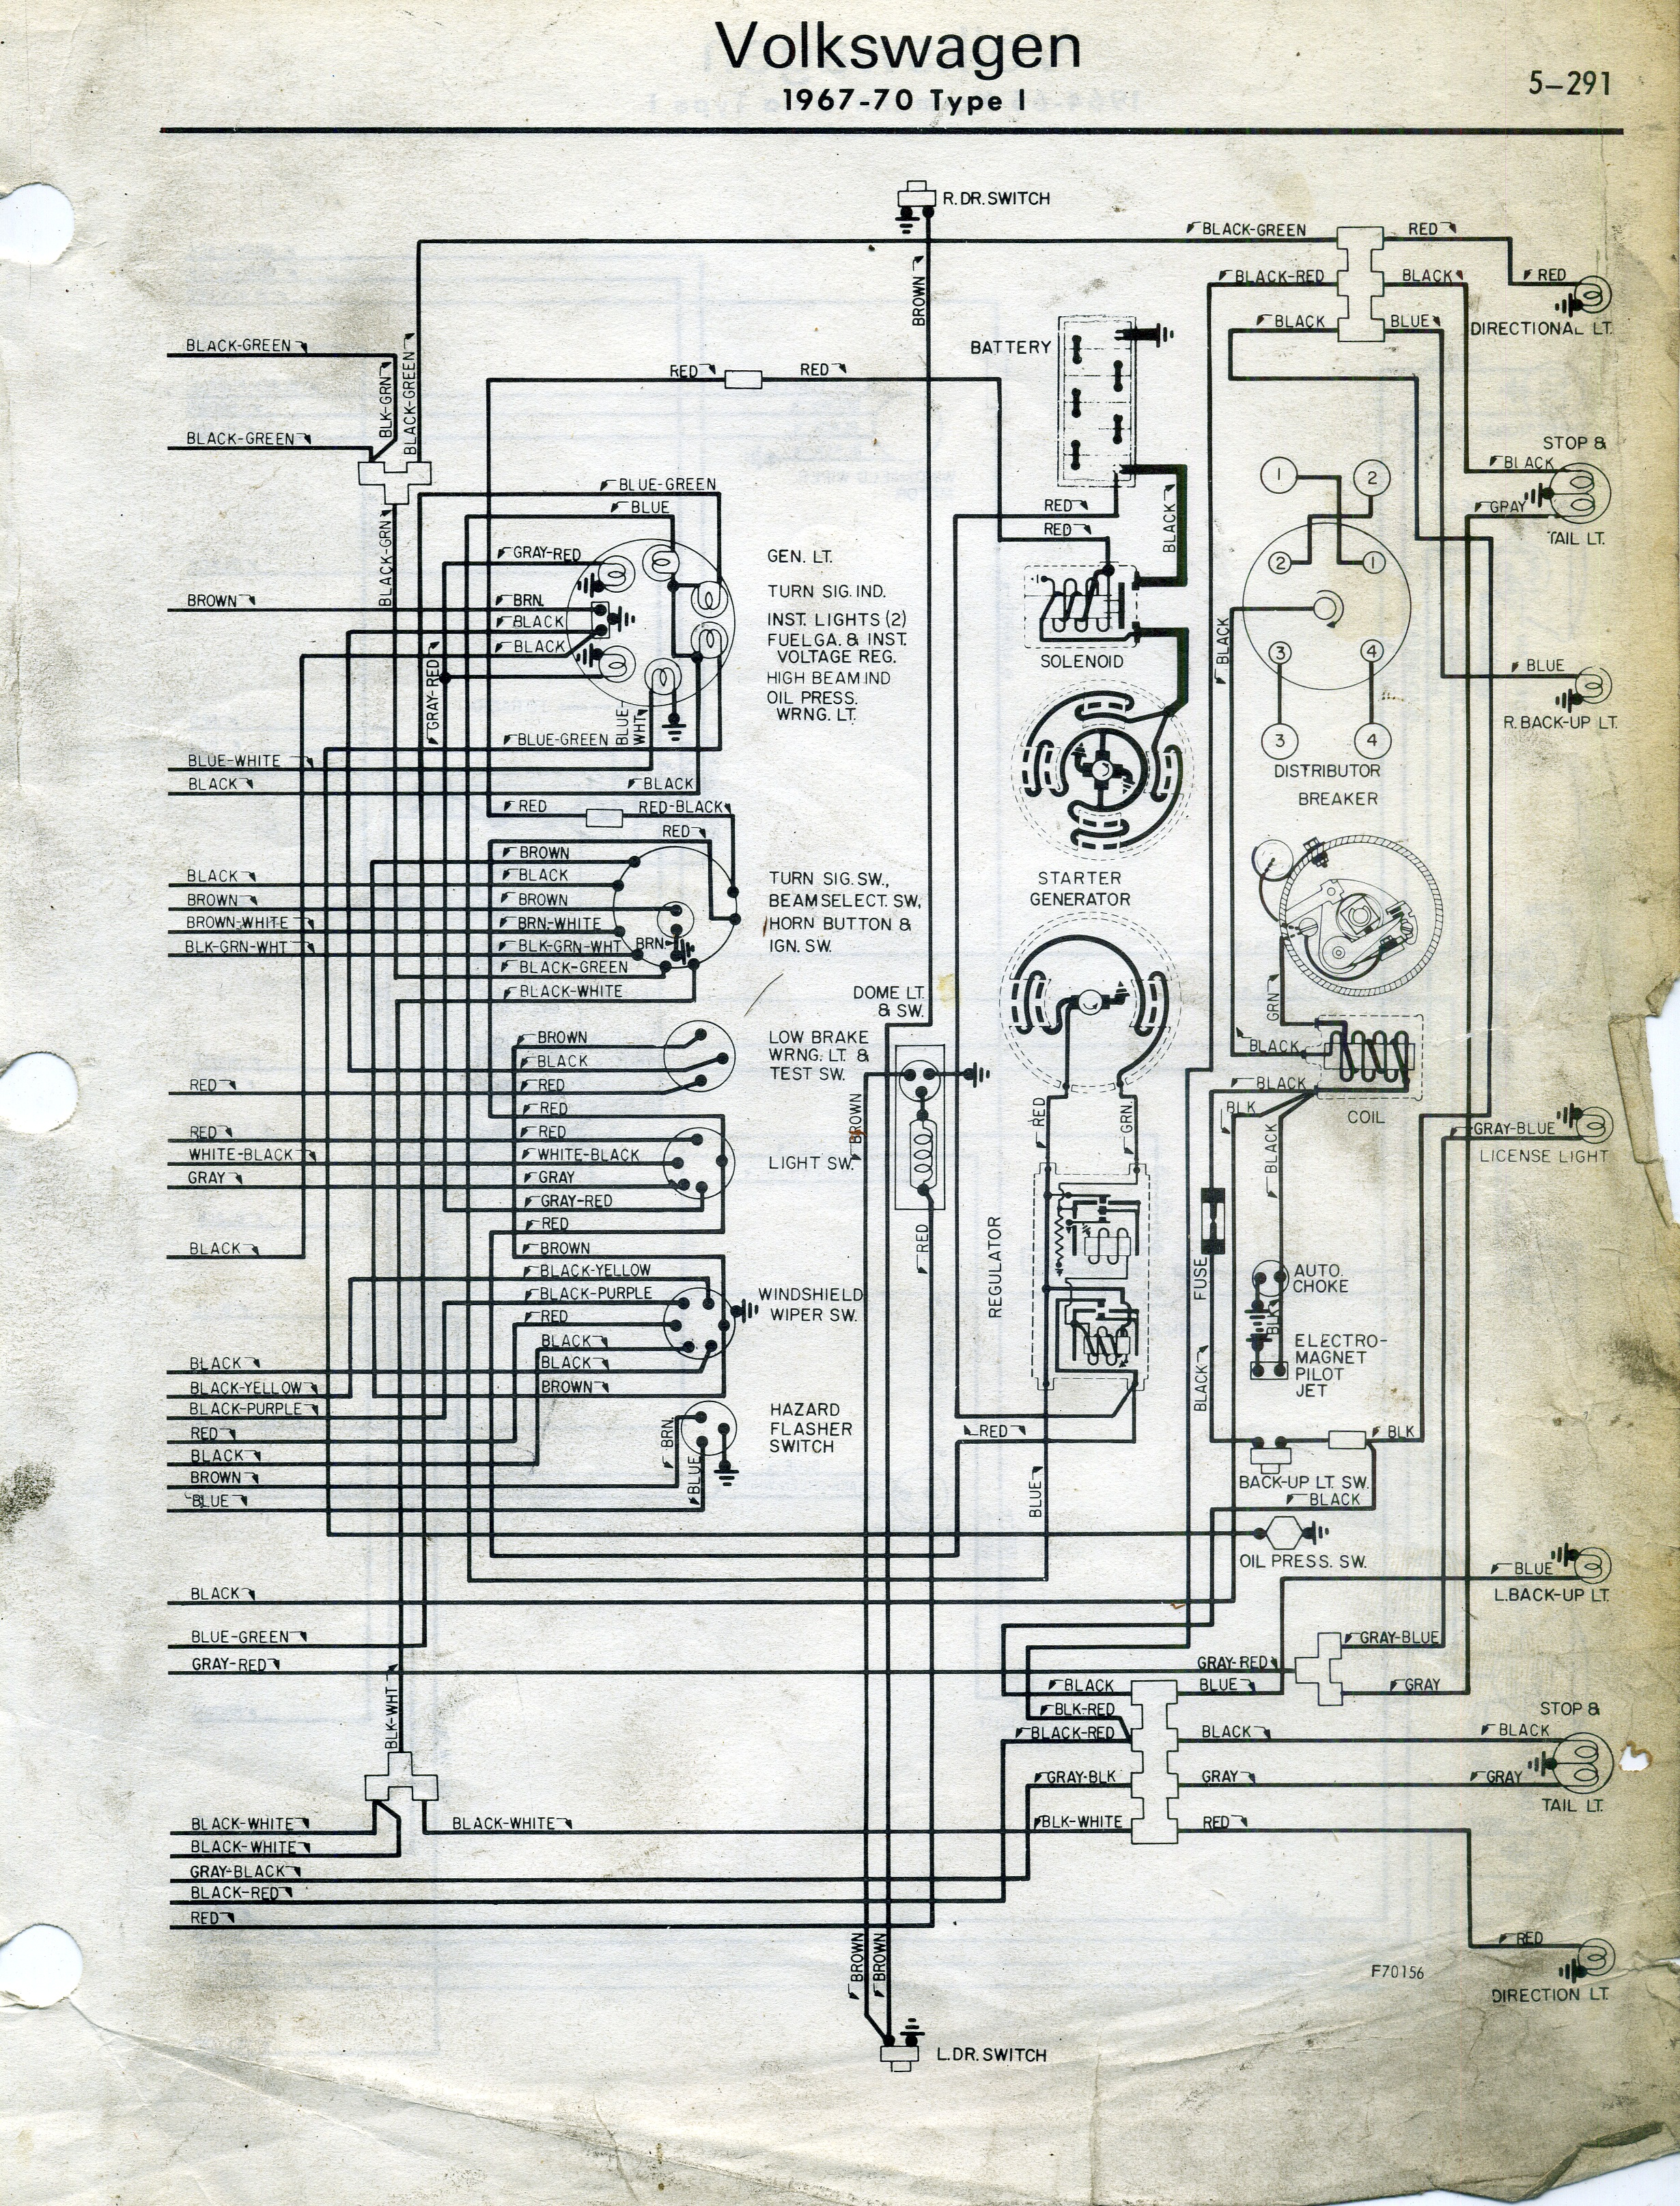 1968 vw type 1 wiring diagram 3000gt stereo thesamba diagrams